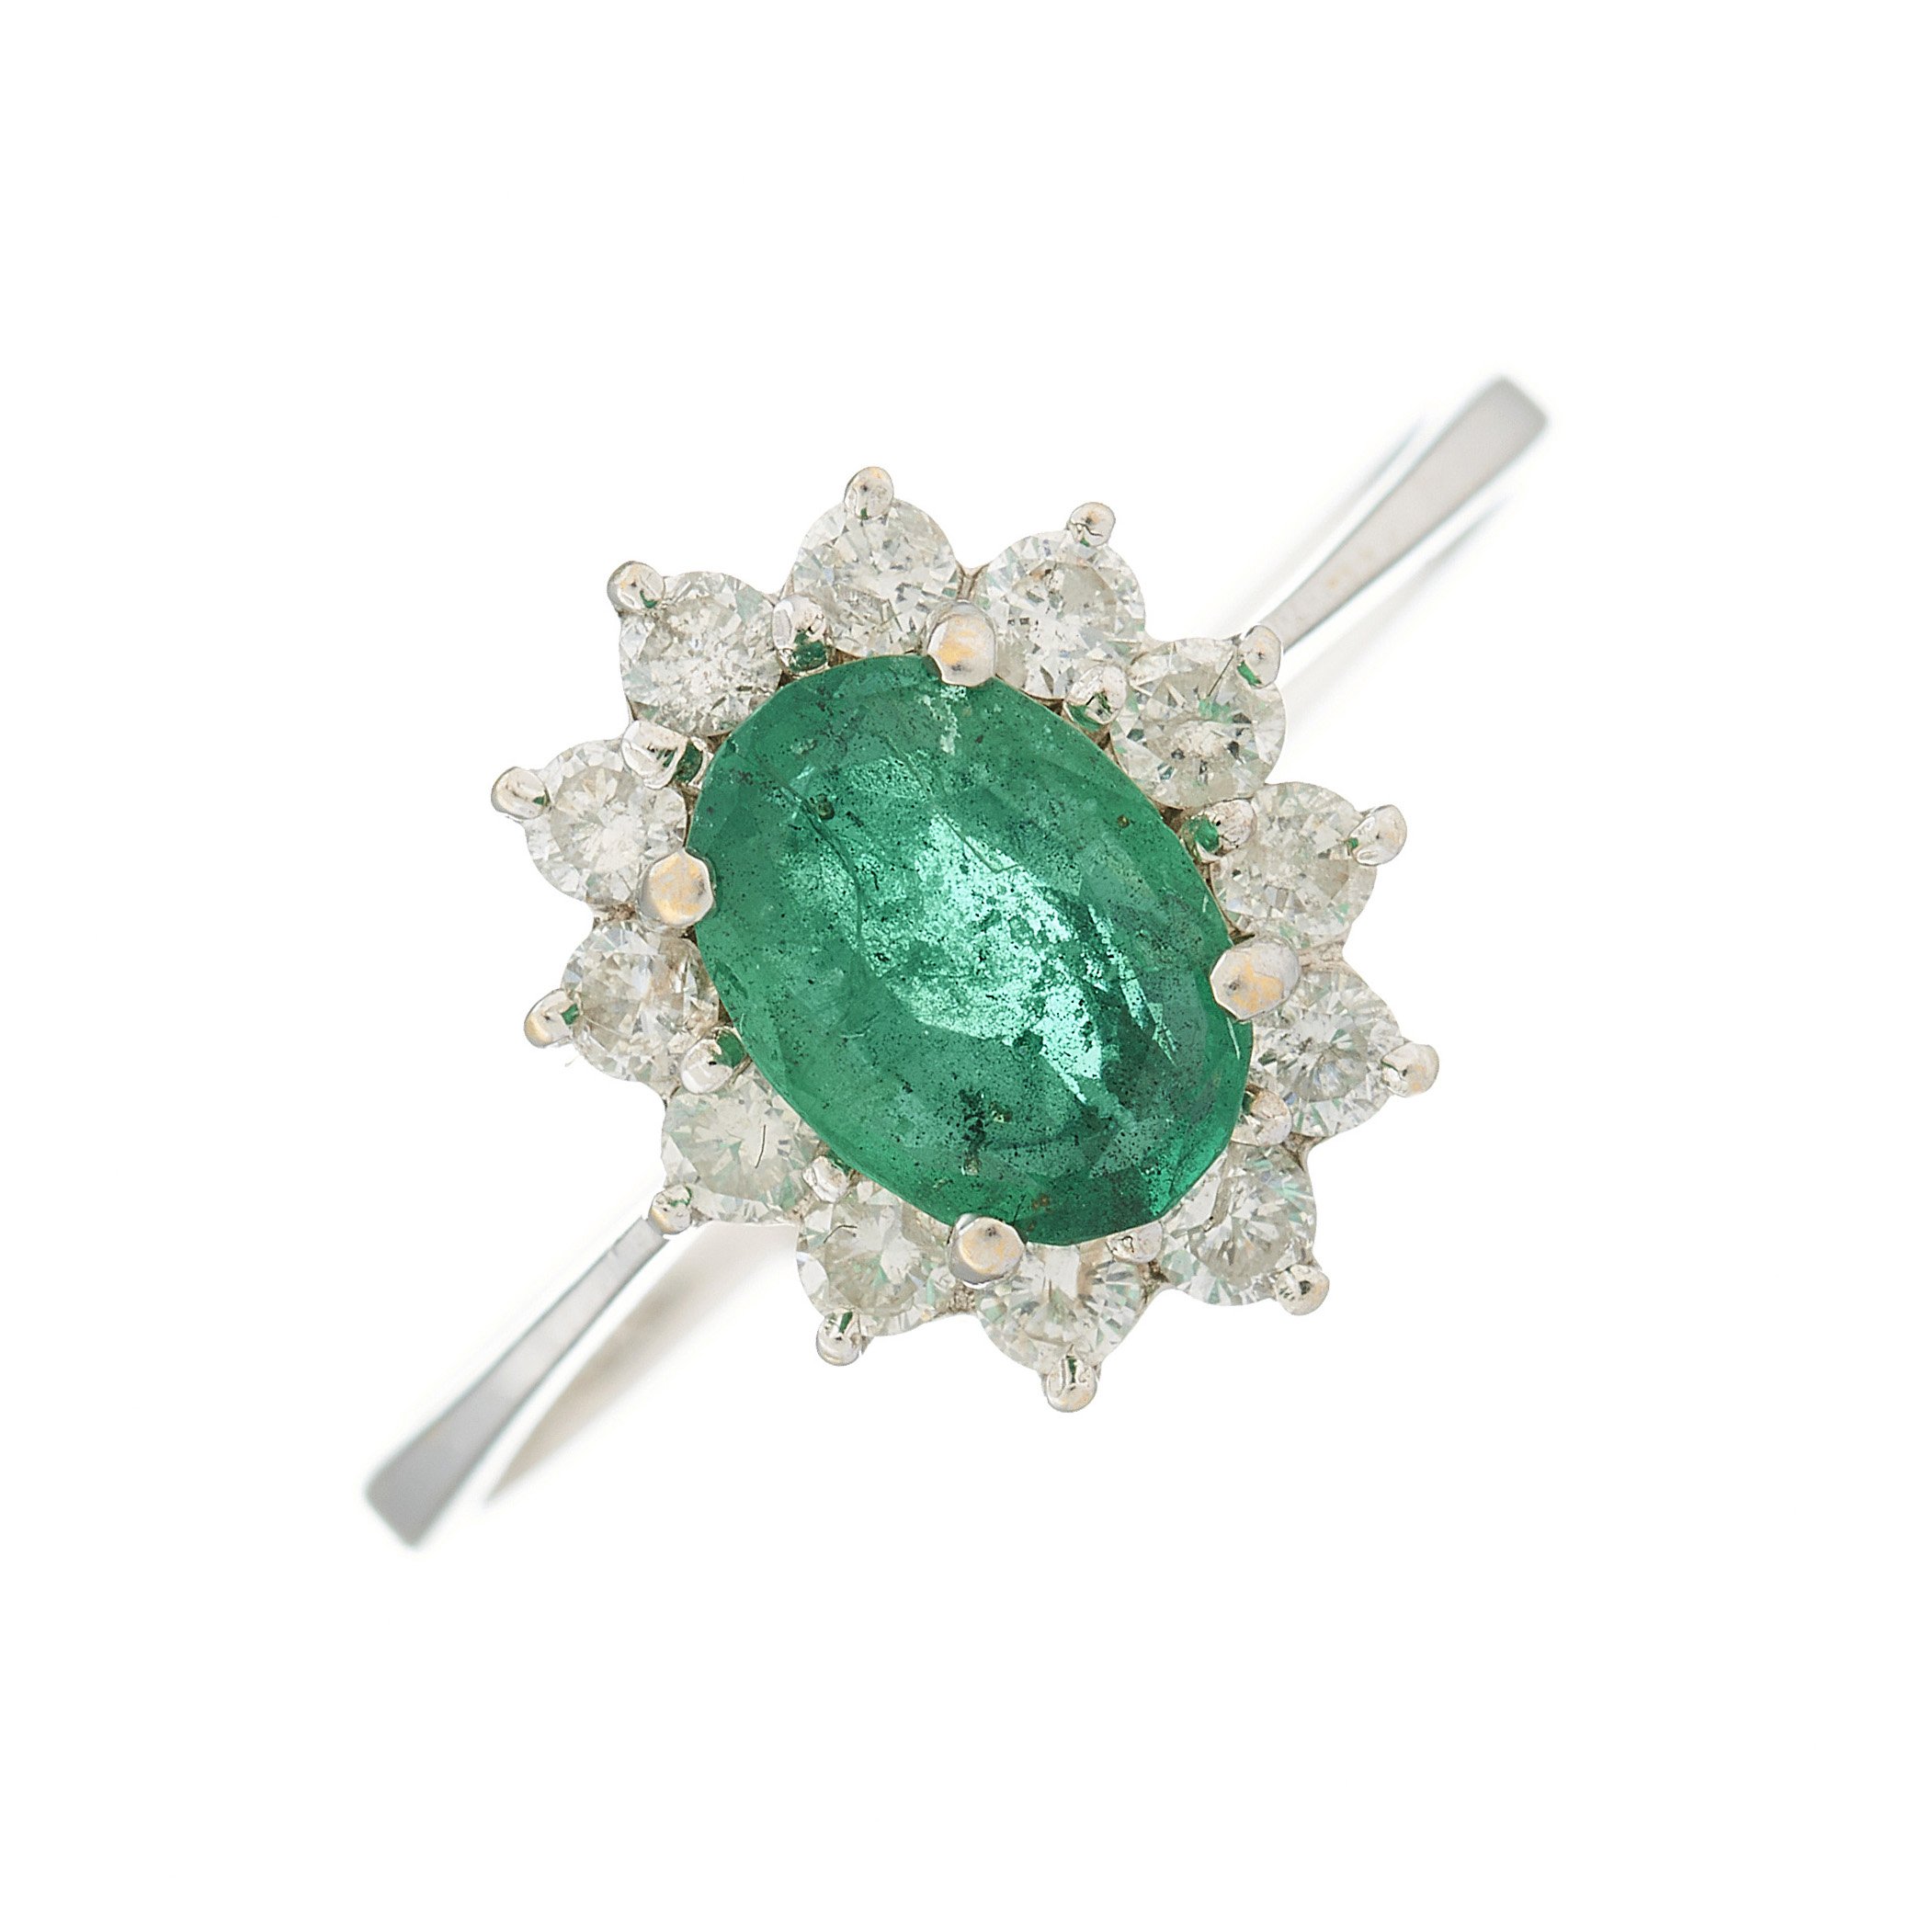 An 18ct gold emerald and diamond cluster ring